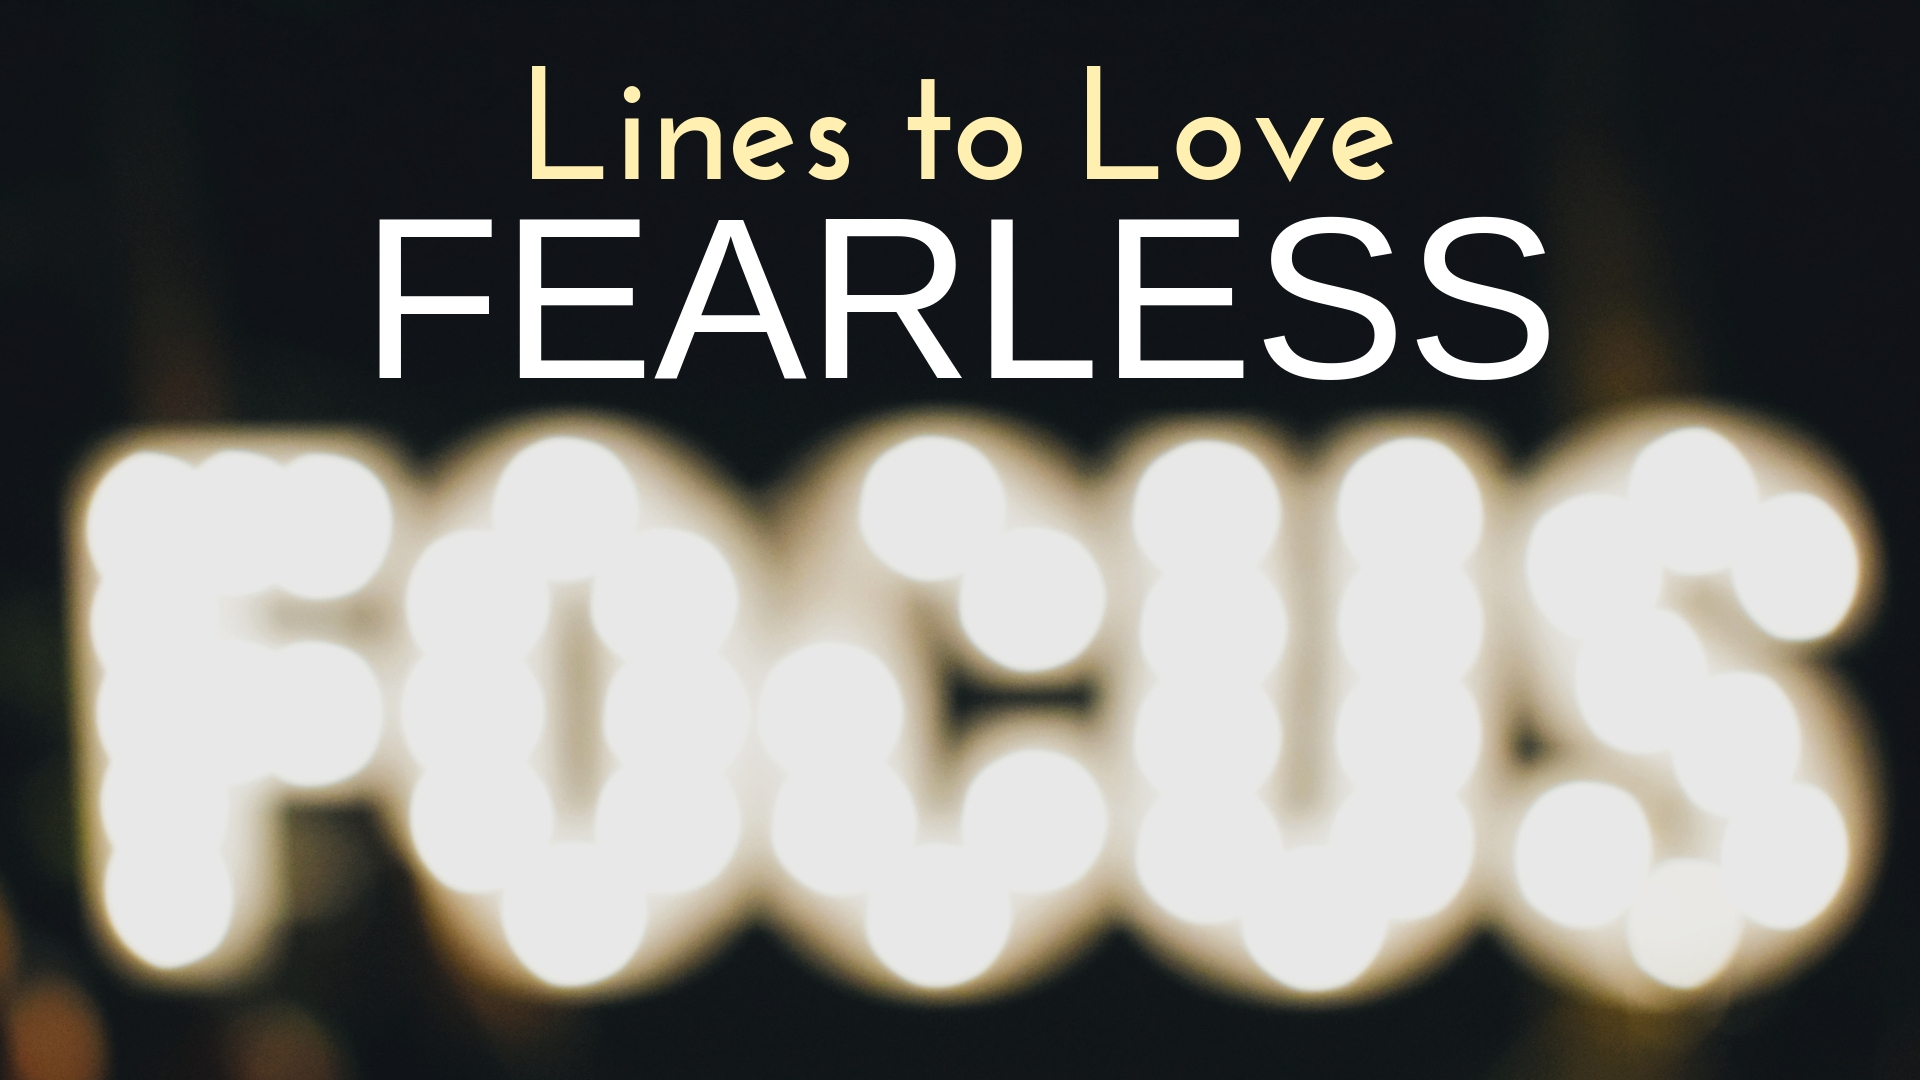 banner-lines-to-love-fearless-focus-10.jpg